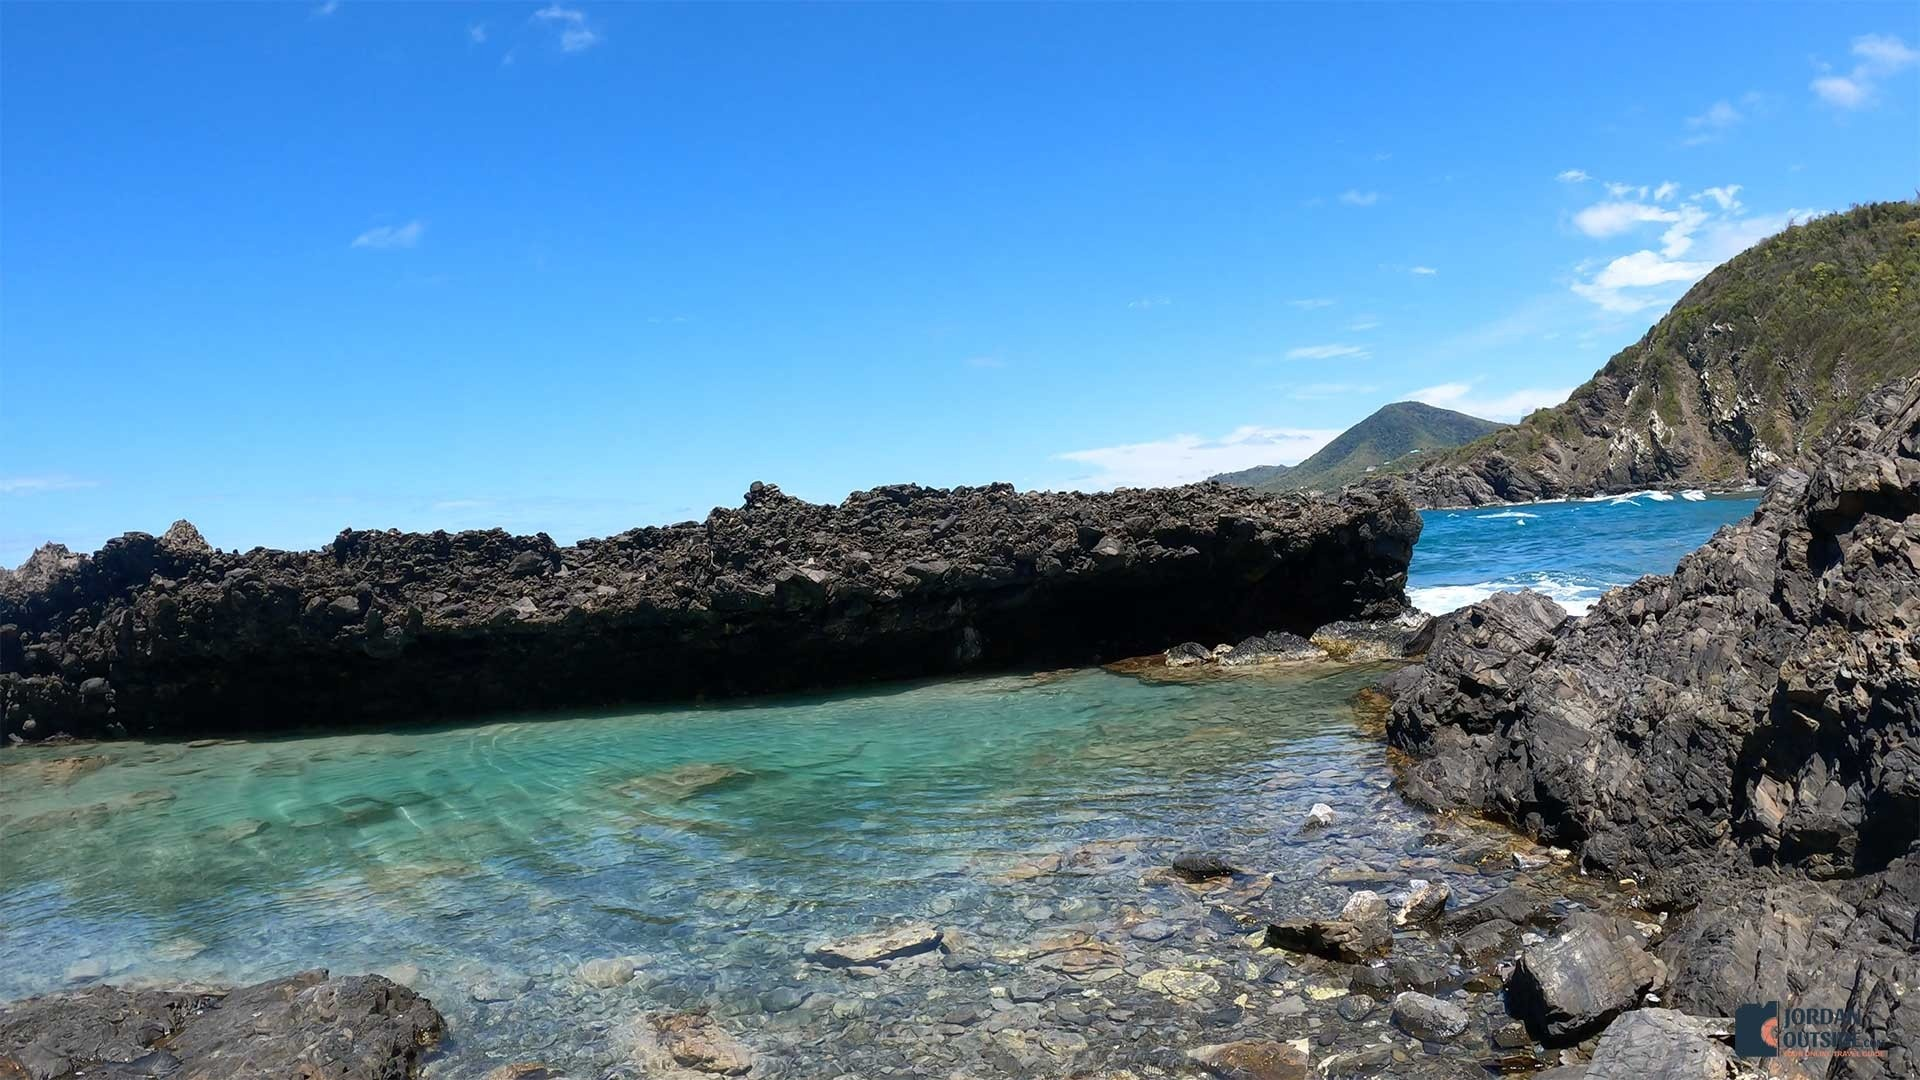 The big tide pool at Annaly Bay in St. Croix